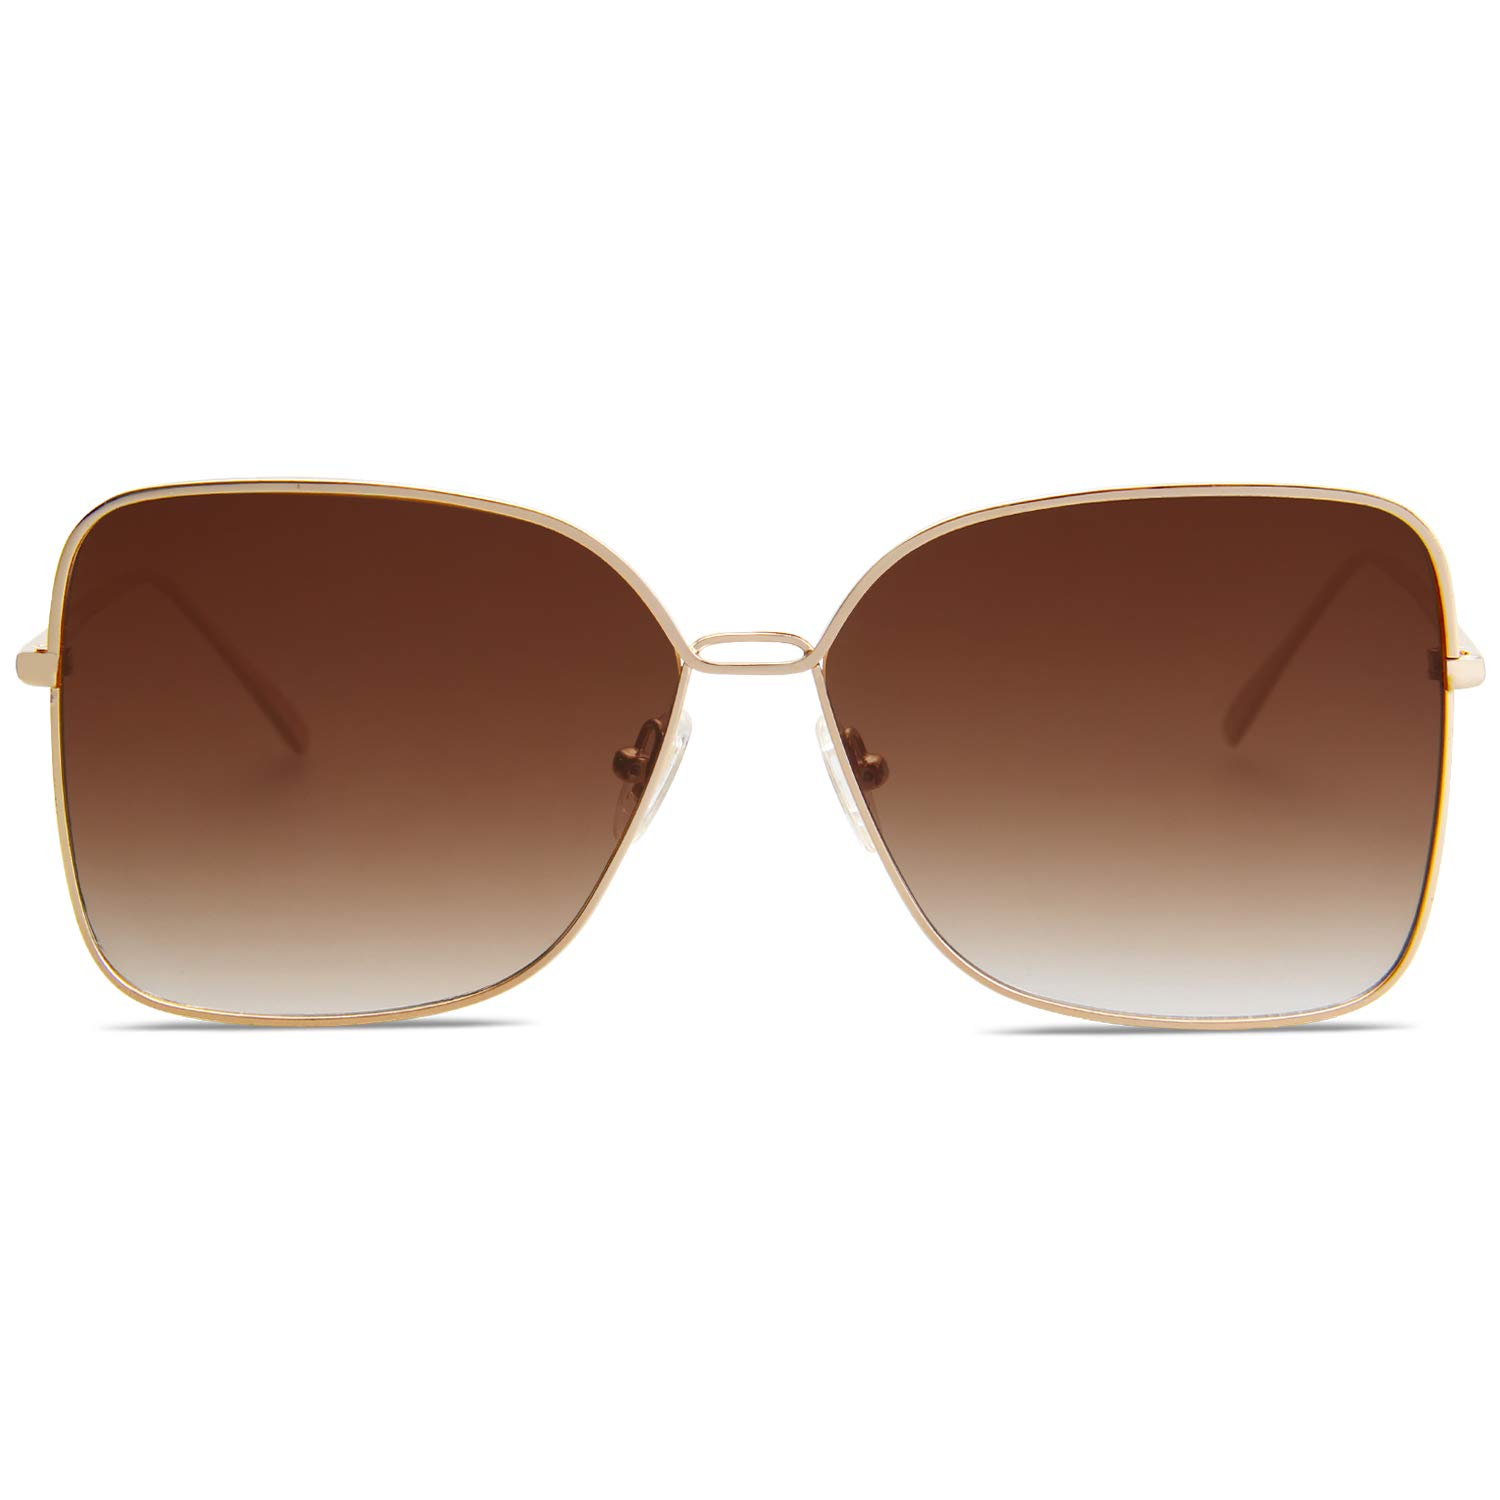 SOJOS Fashion Designer Square Sunglasses for Women Flat Mirrored Lens SJ1082 with Gold Frame/Gradient Brown Lens by SOJOS